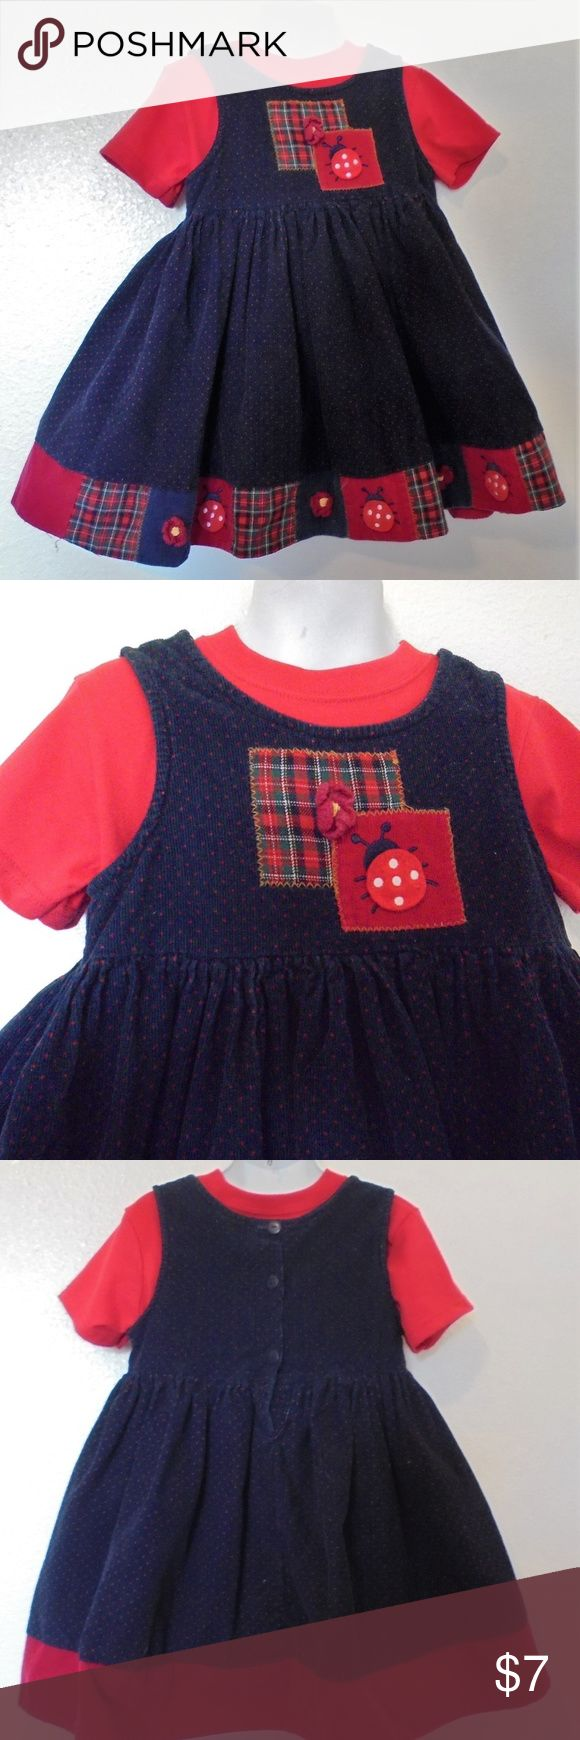 Red Polka Dot Ladybug Cord Jumper w/Top Girls Sz 4 Girls Size 4 By Samara  Gently used, good condition, no spots or stains, top is red and has tags  Jumper: By Samara, Jumper navy with tiny red polka dots, 2 patches on bodice, one plaid with crocheted flower and the other one is red with a lady bug. Rounded neckline and buttons down the back, sleeveless, corduroy jumper, the skirt is gathered and around hem line are patches with lady bugs and flowers. Cotton. Machine wash. Top/Shirt: By…